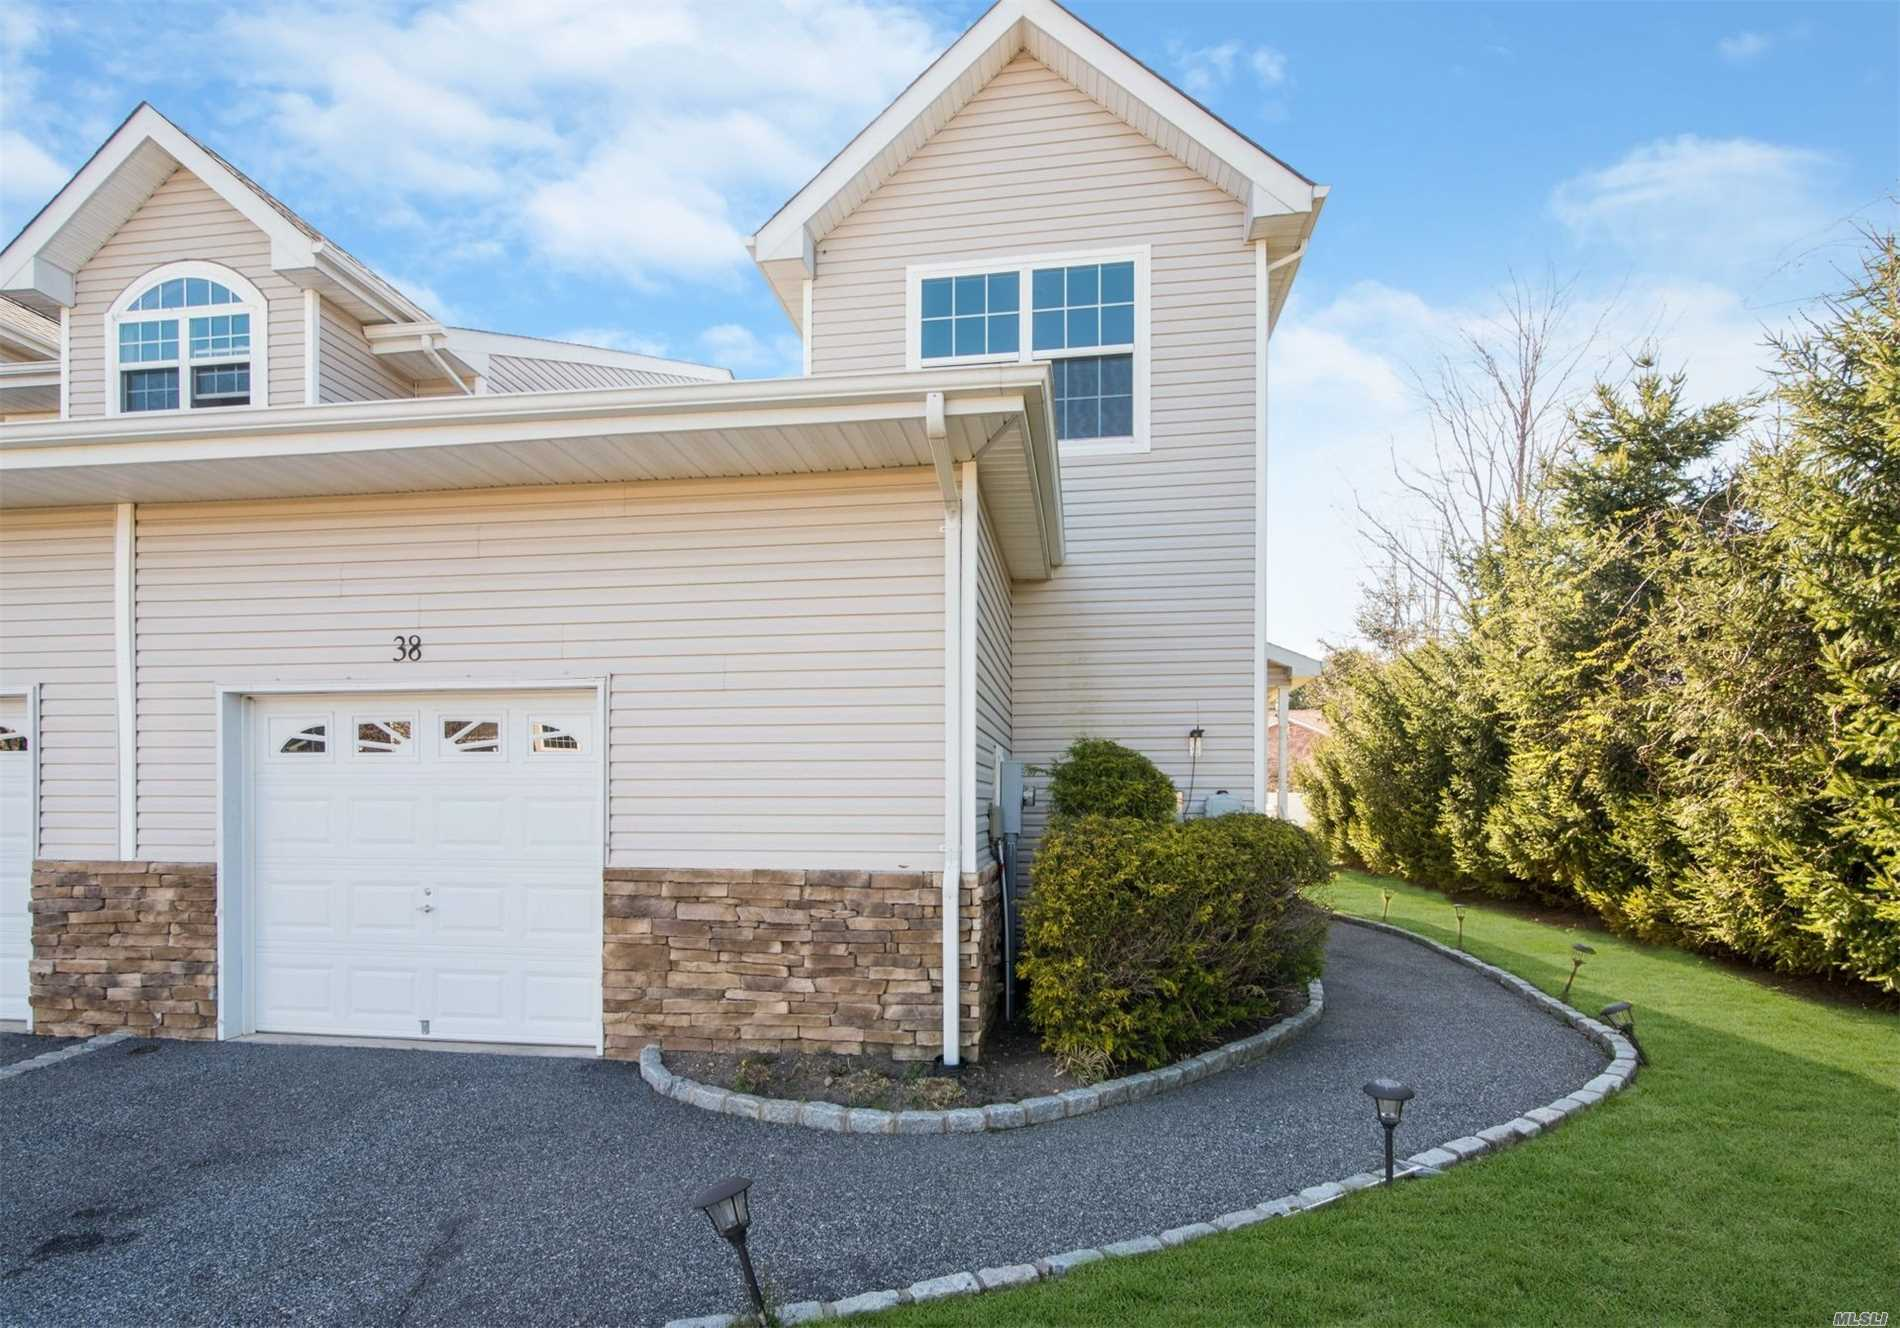 38 Terrace Ln - Patchogue, New York